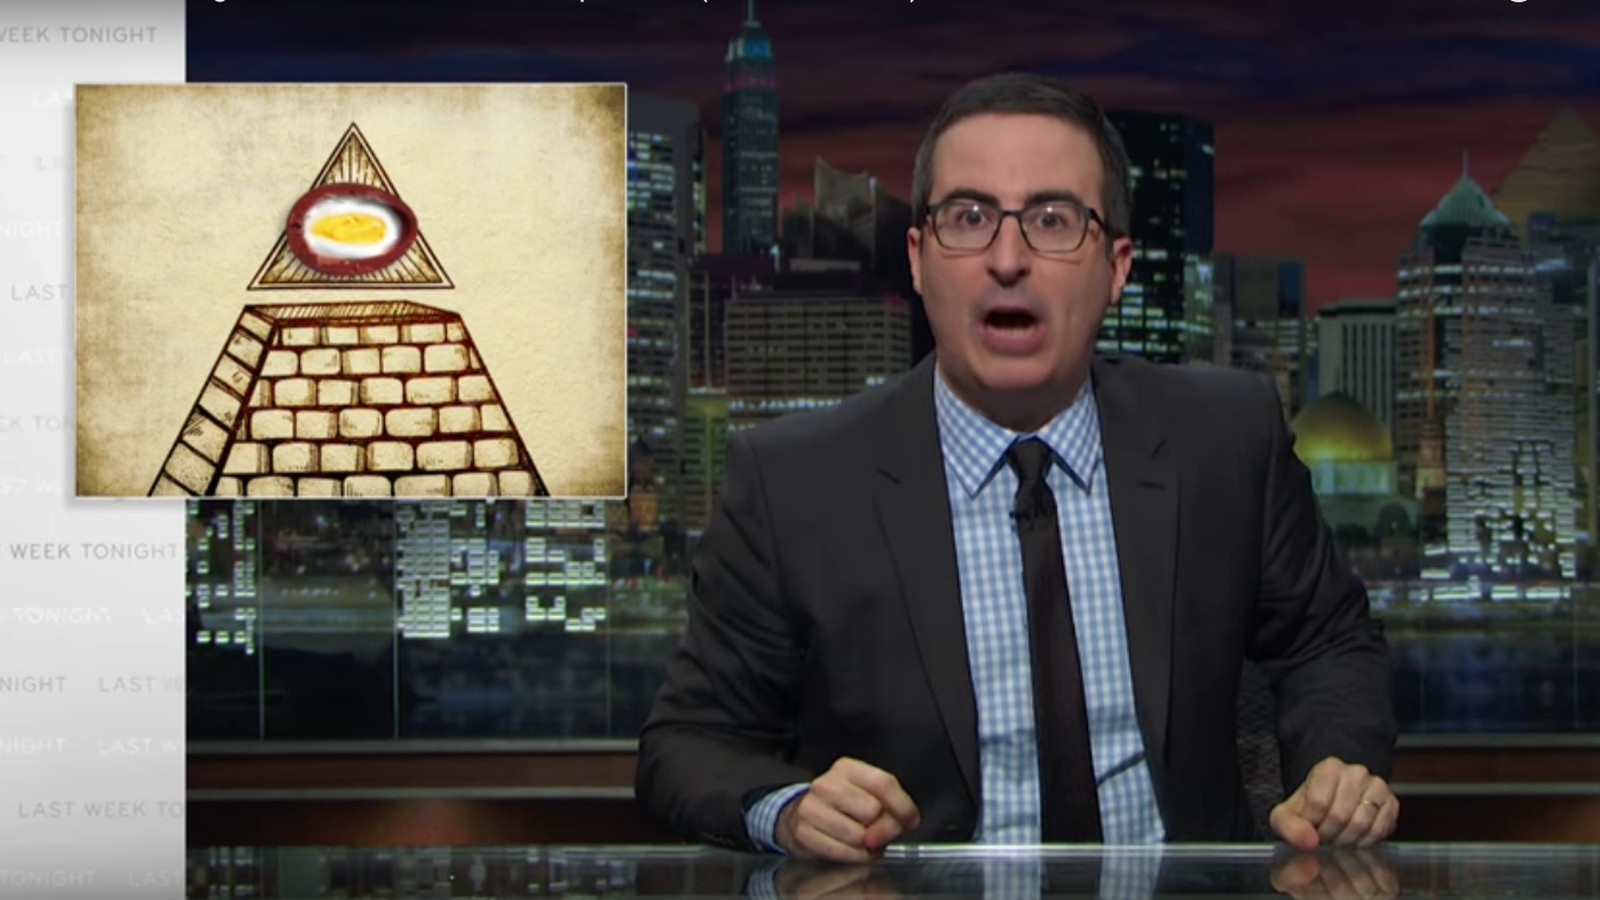 John Oliver Gives YouTube Conspiracy Videos A Hammering Screen_Shot_2016-03-28_at_9.03.23_AM.0.0